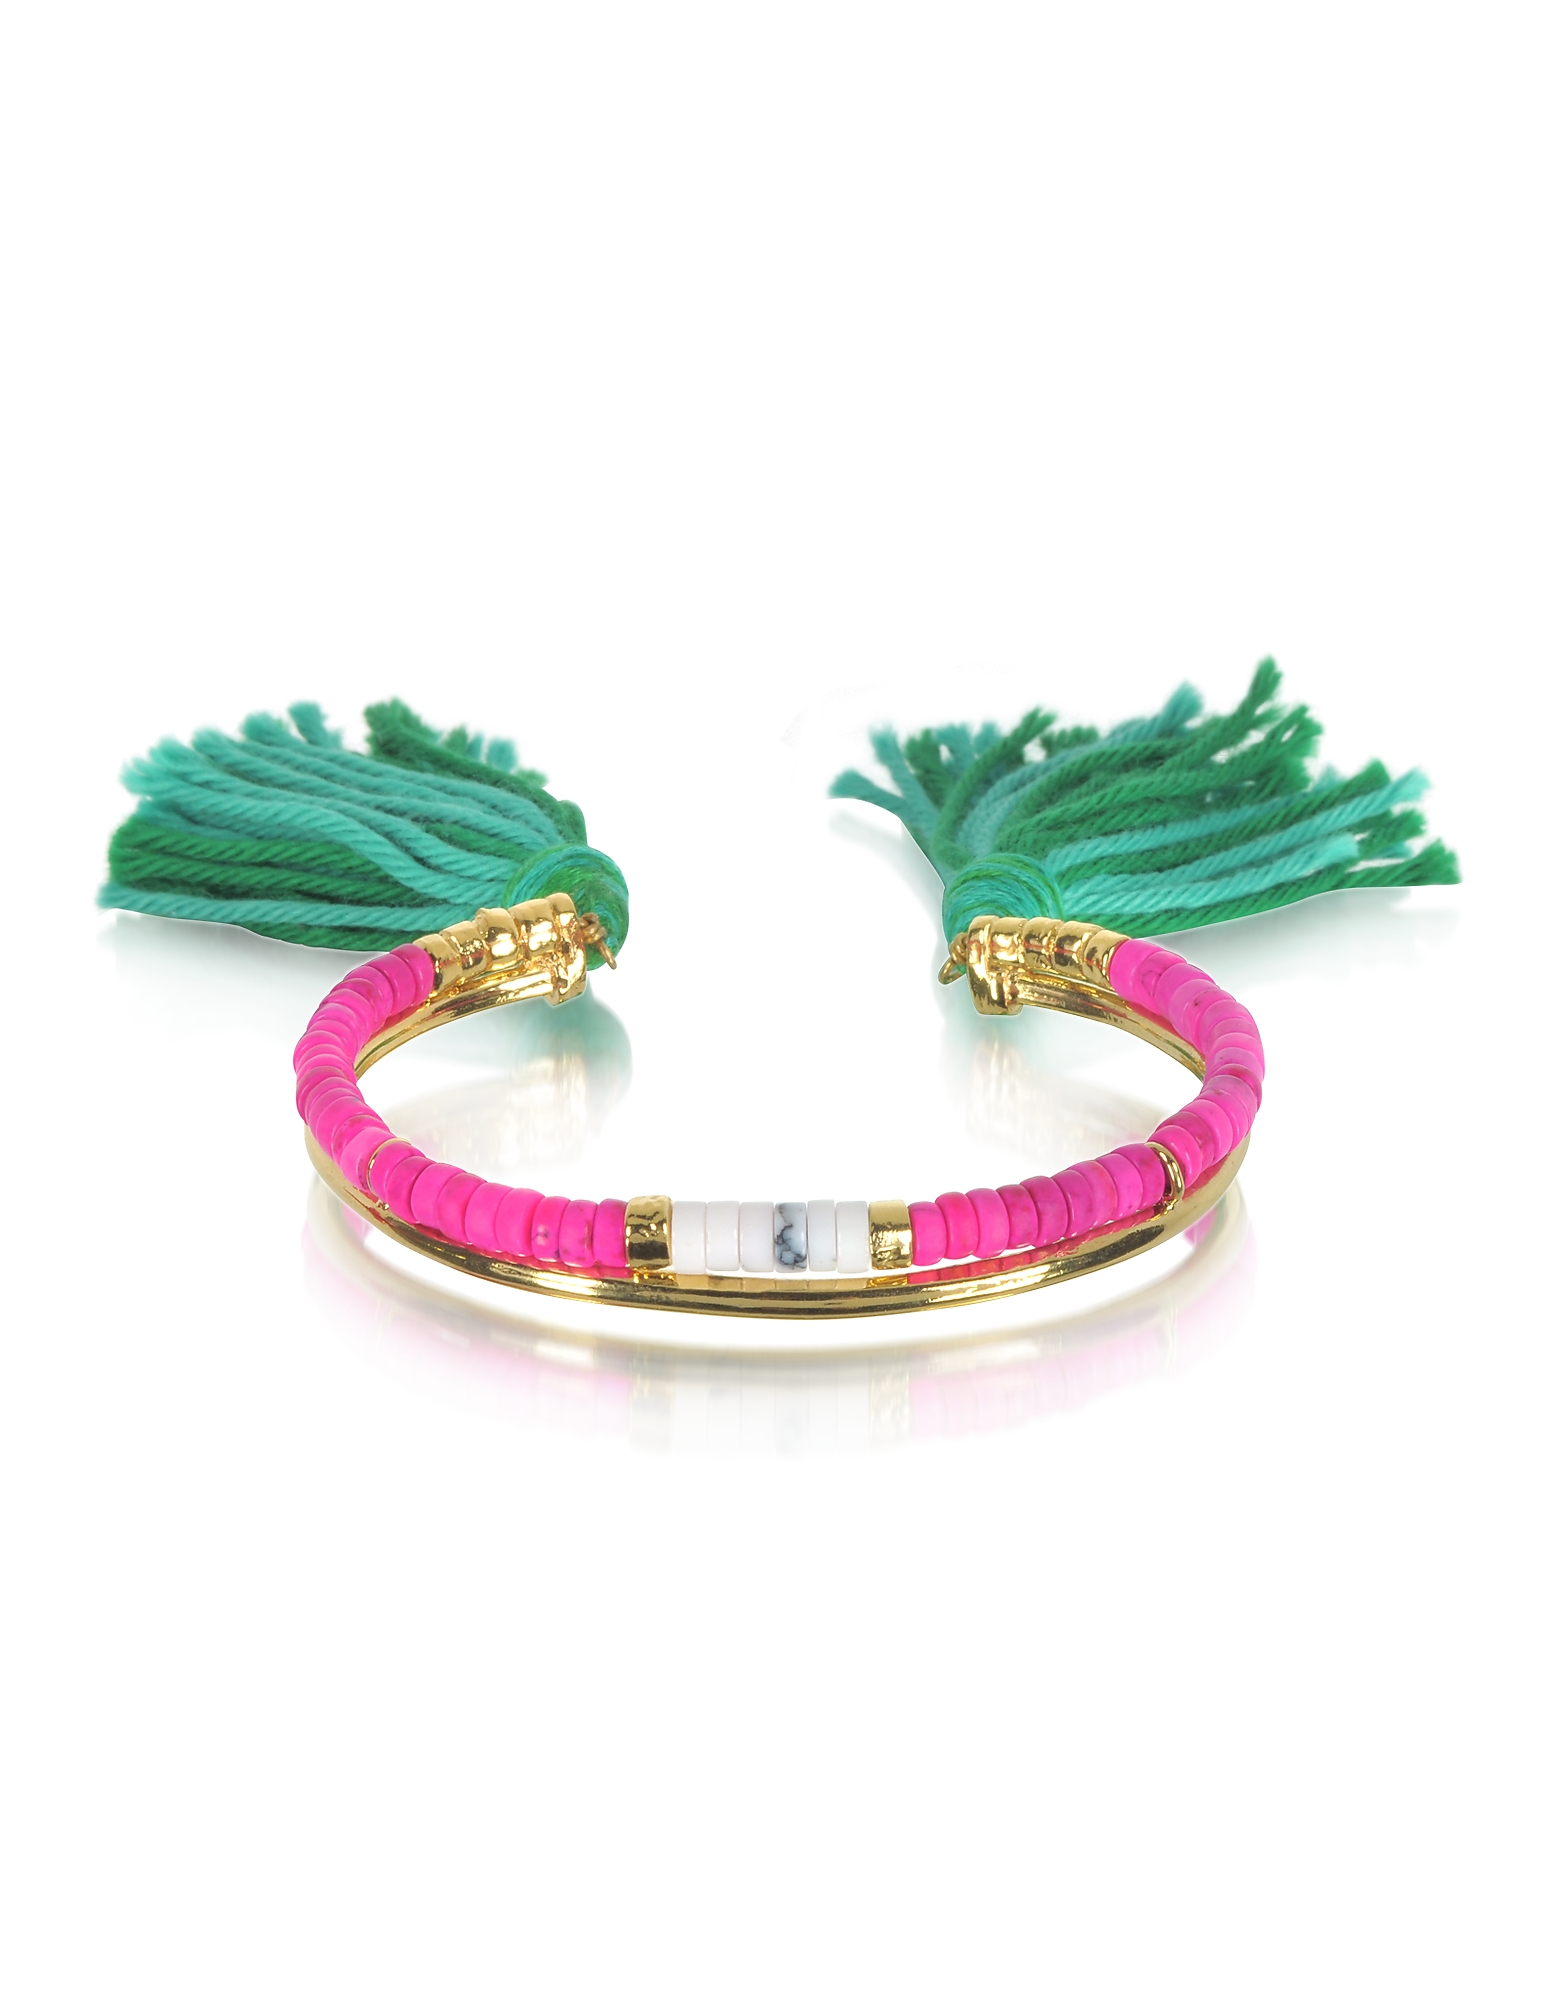 Image of Aurelie Bidermann Designer Bracelets, 18K Gold-plated & Pink Tinted Howlite and White Bamboo Beads Sioux Bracelet w/Emerald Cotton Tassels